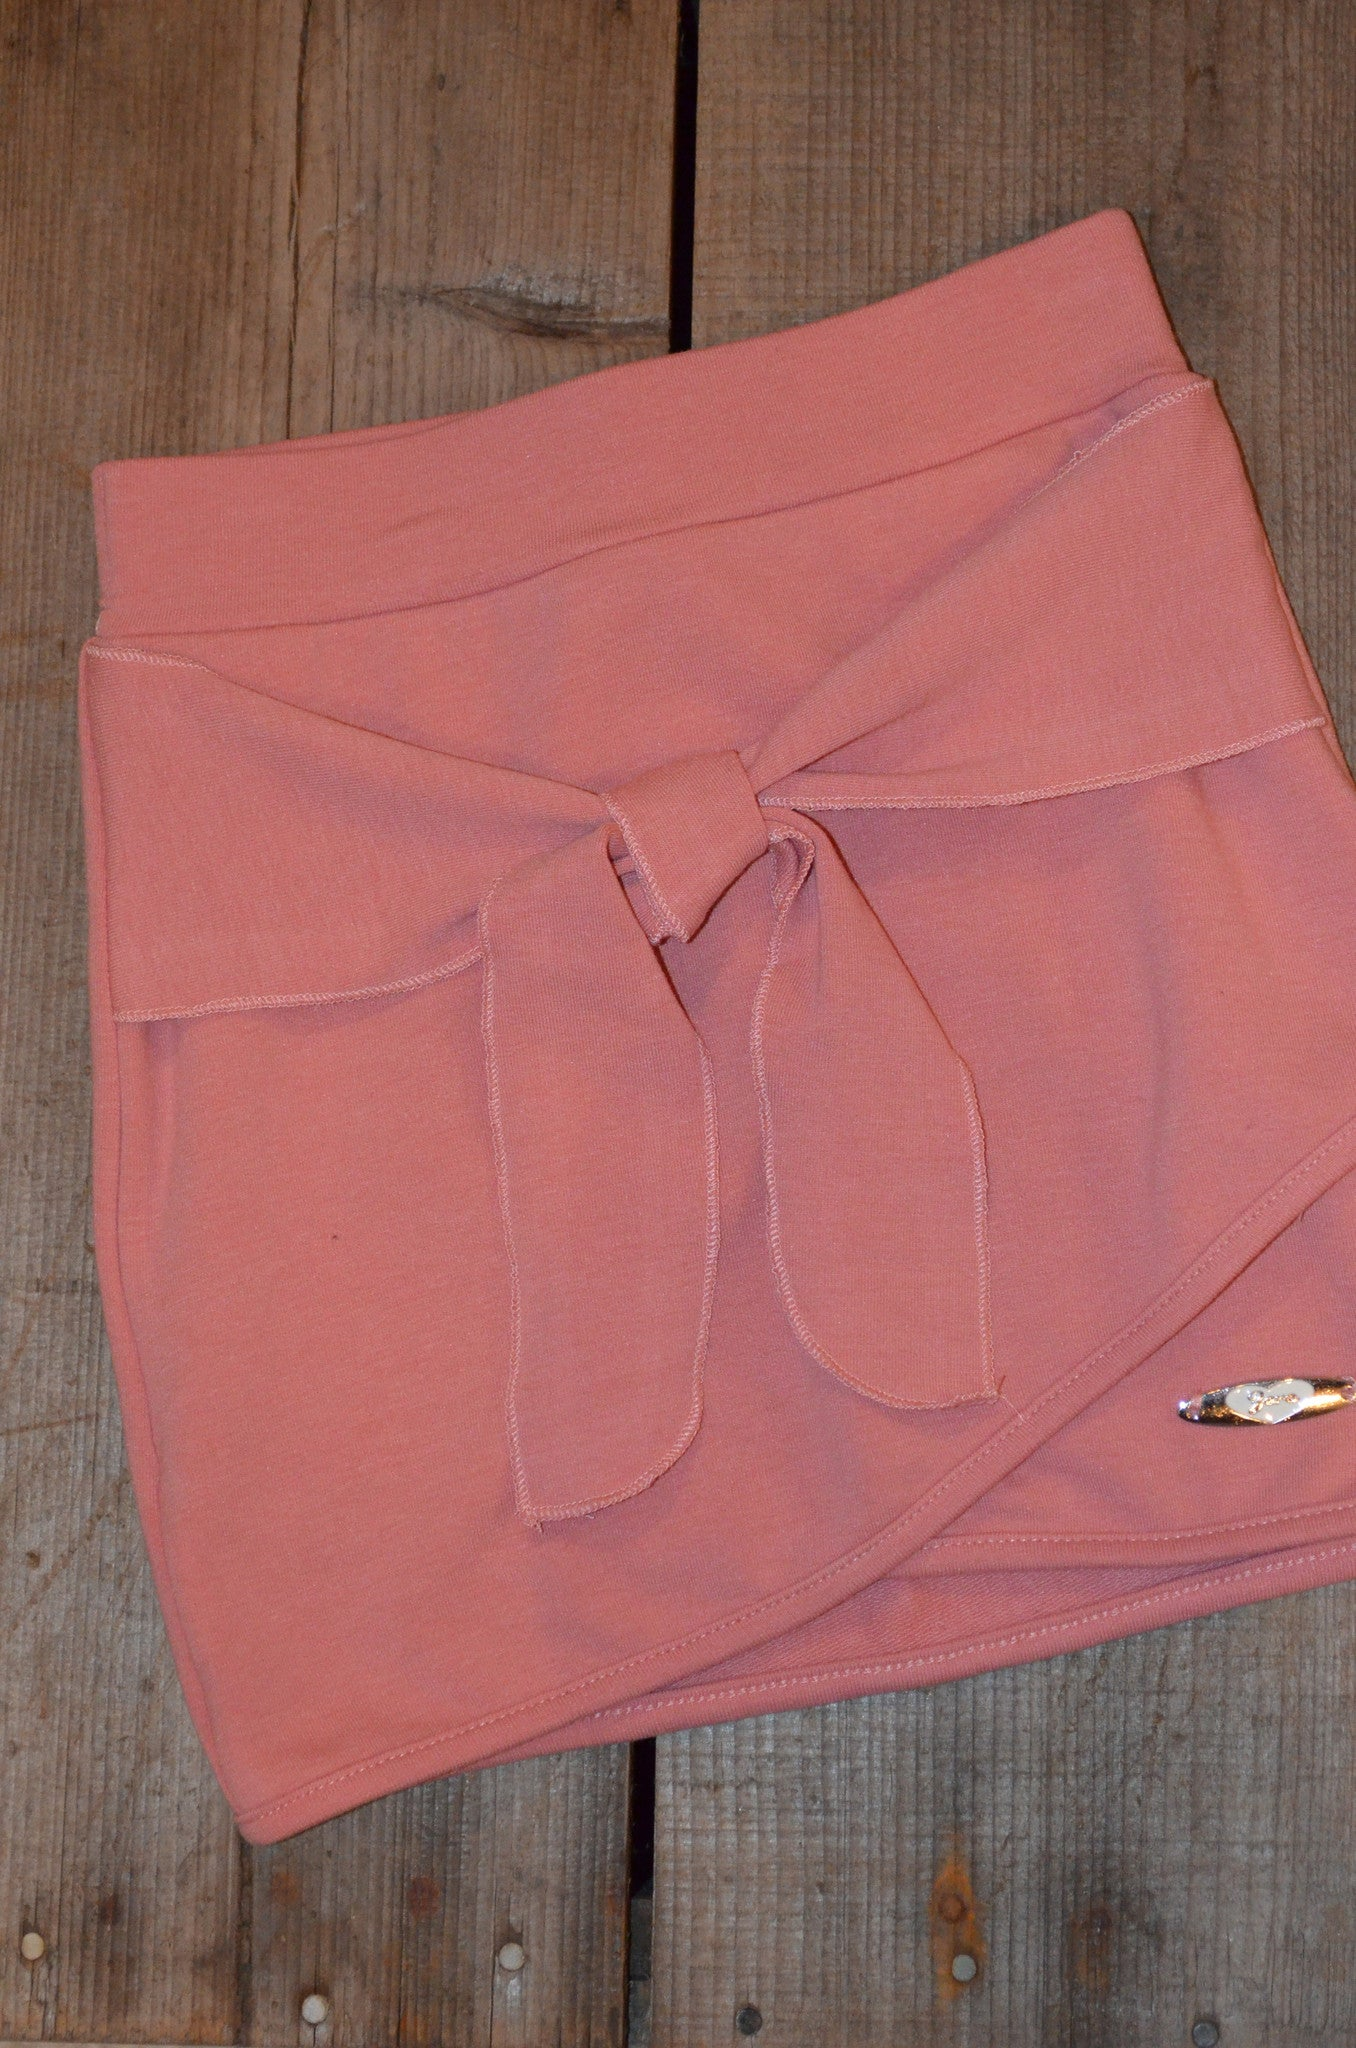 ZR - Maelle rose skirt